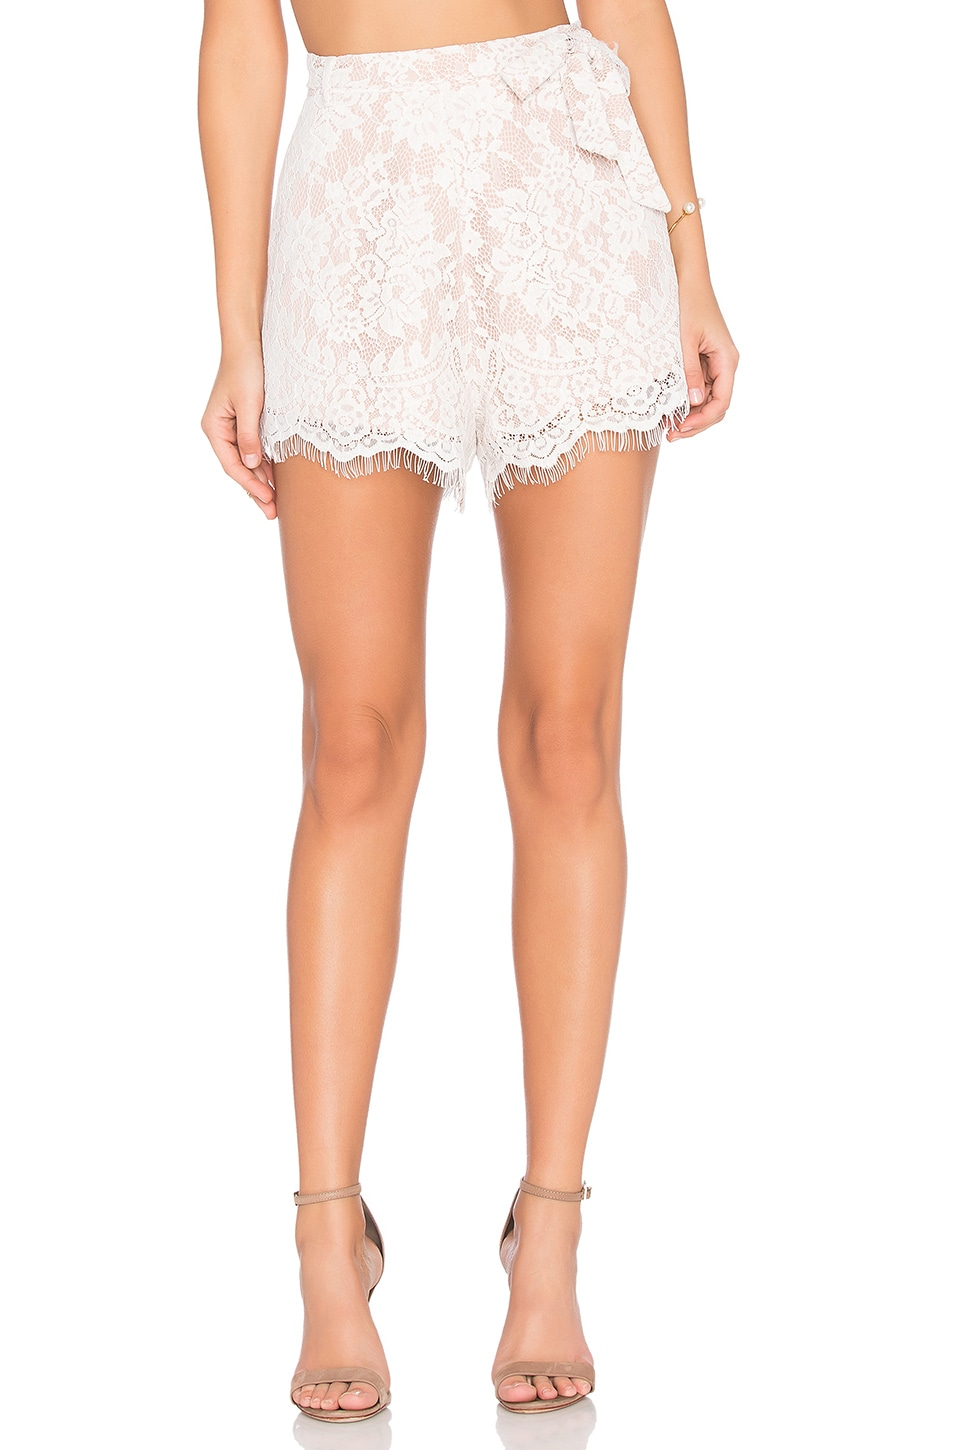 THE JETSET DIARIES x Revolve Secret Lace Short in Ivory